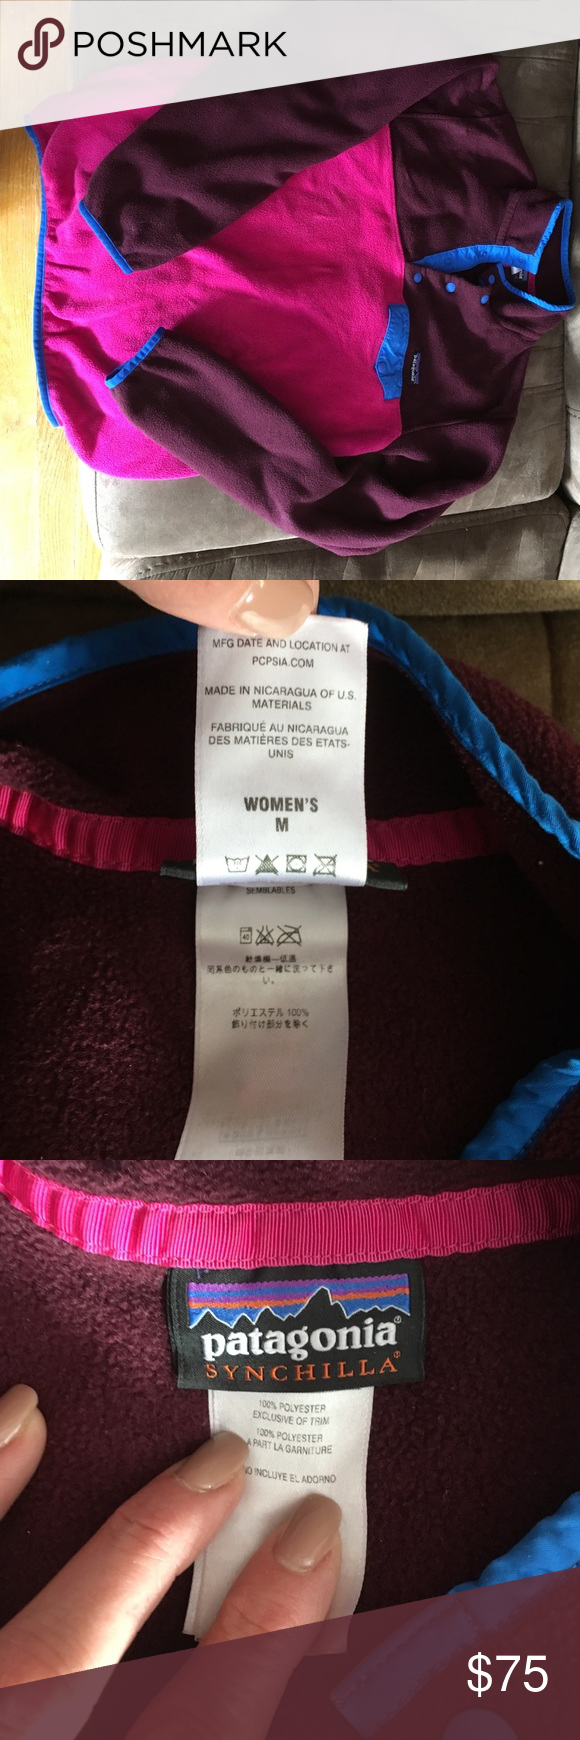 Patagonia synchilla snap pullover pink burgundy Gently used.. lots of life left!!! Patagonia Tops Sweatshirts & Hoodies